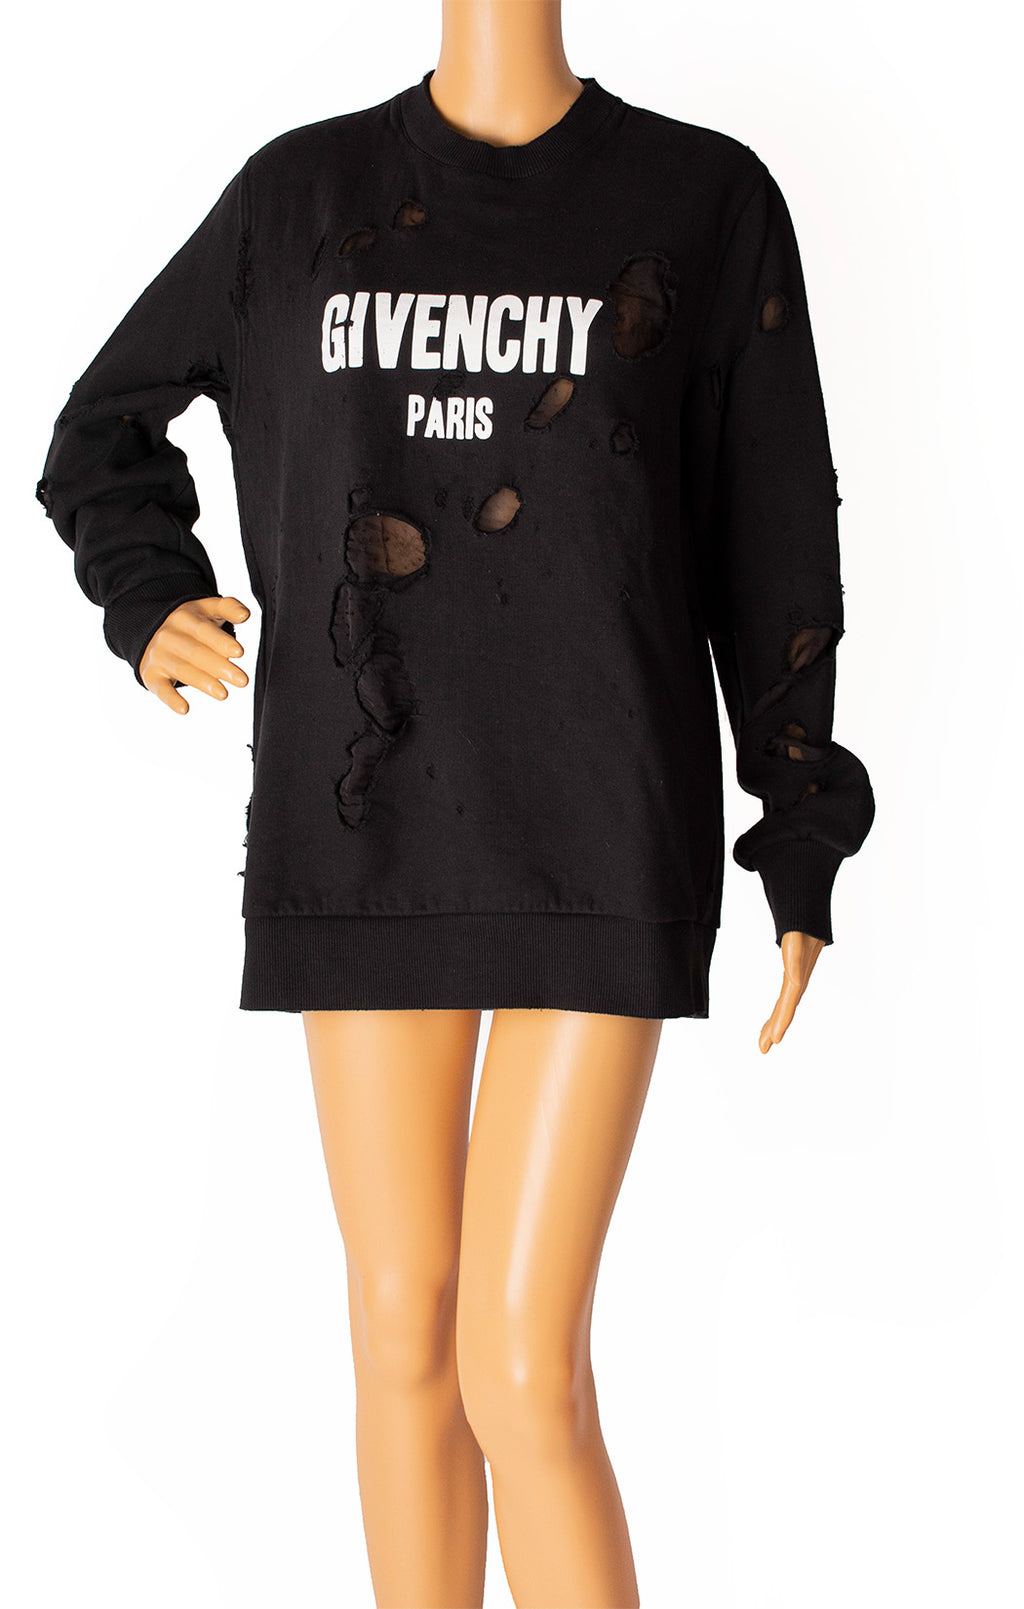 Front view of GIVENCHY Sweatshirt Size: Small